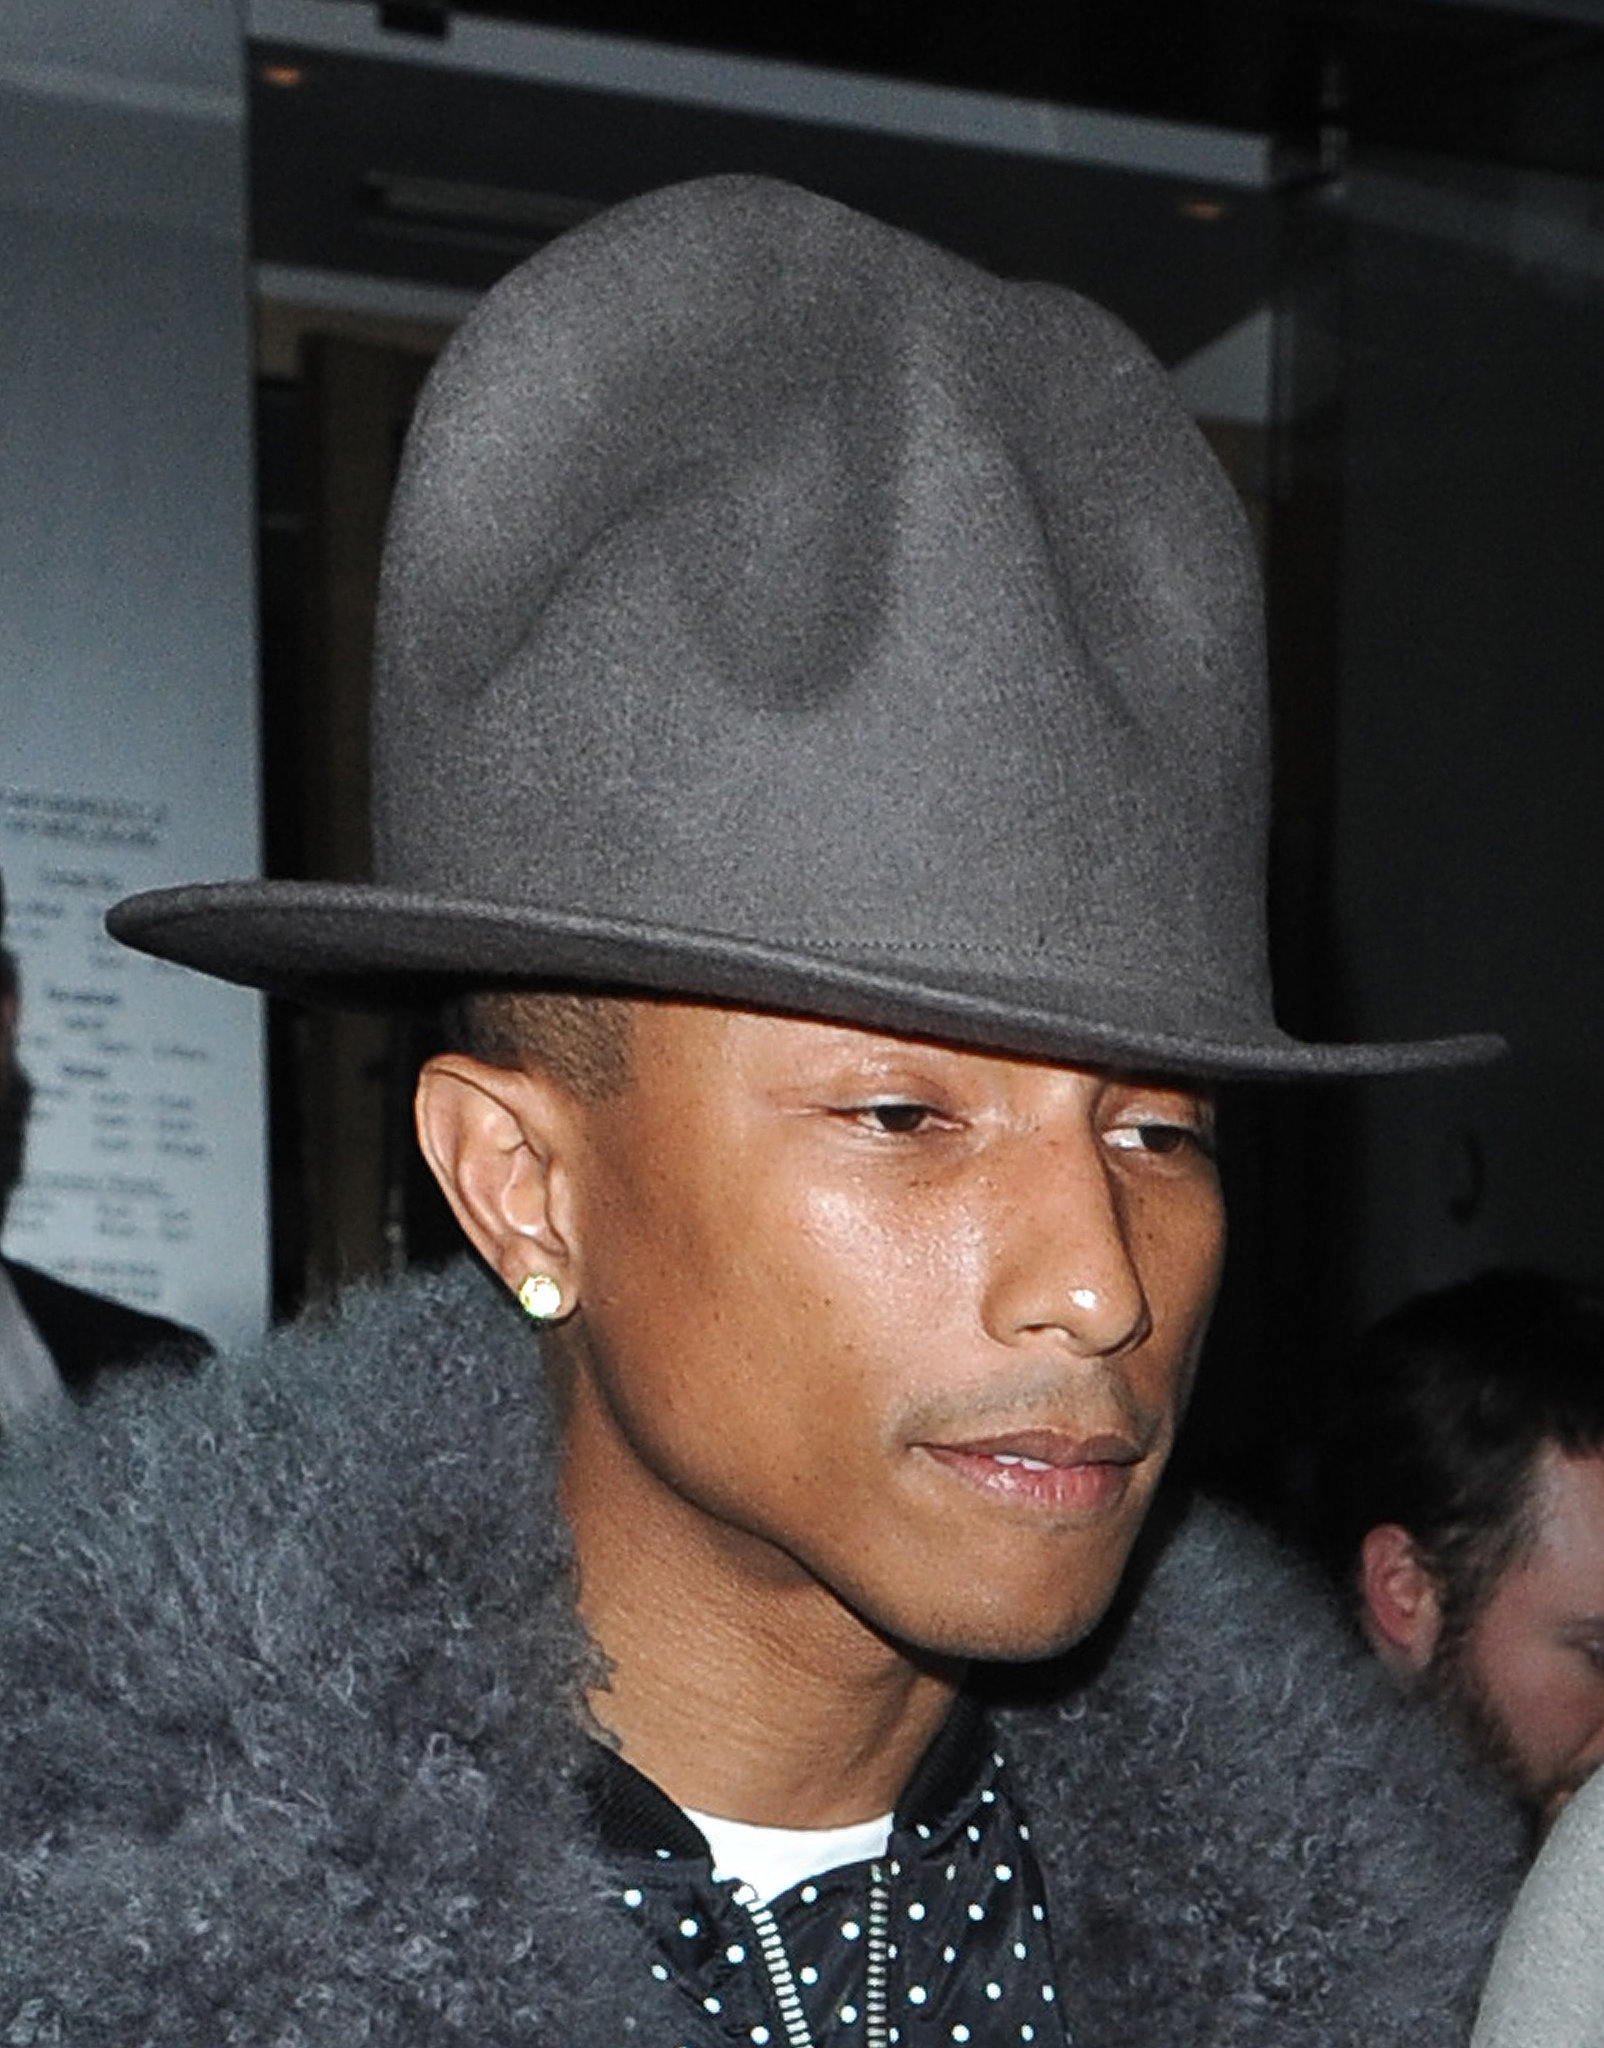 Pharrell was spotted out in London with his hat at the beginning of the month. The two switched up their look with matching shades of gray.